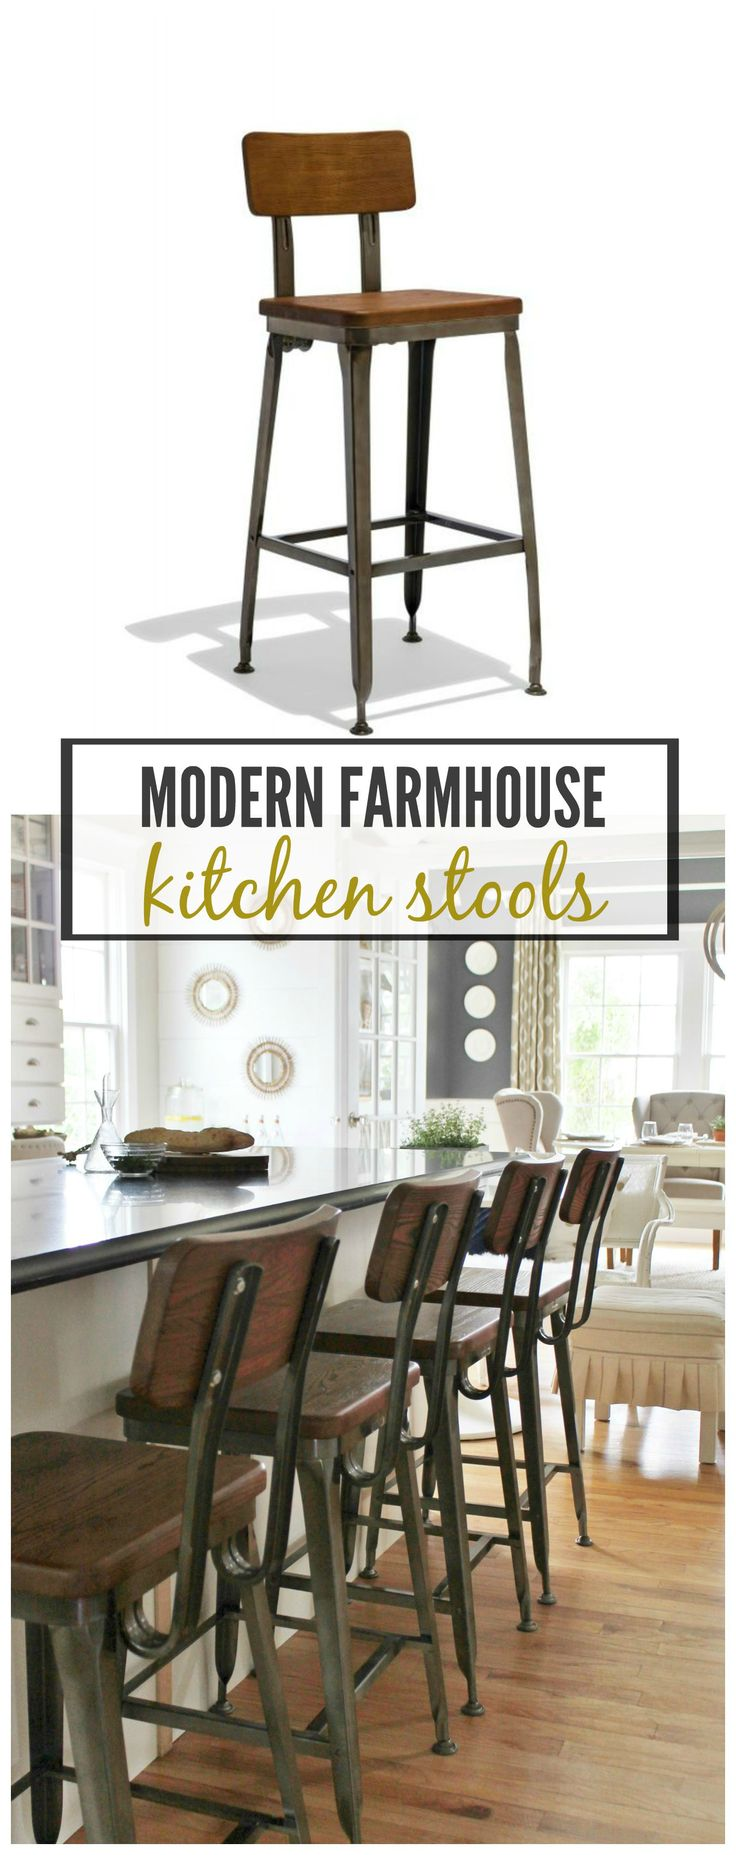 best industrial and farmhouse images on pinterest industrial